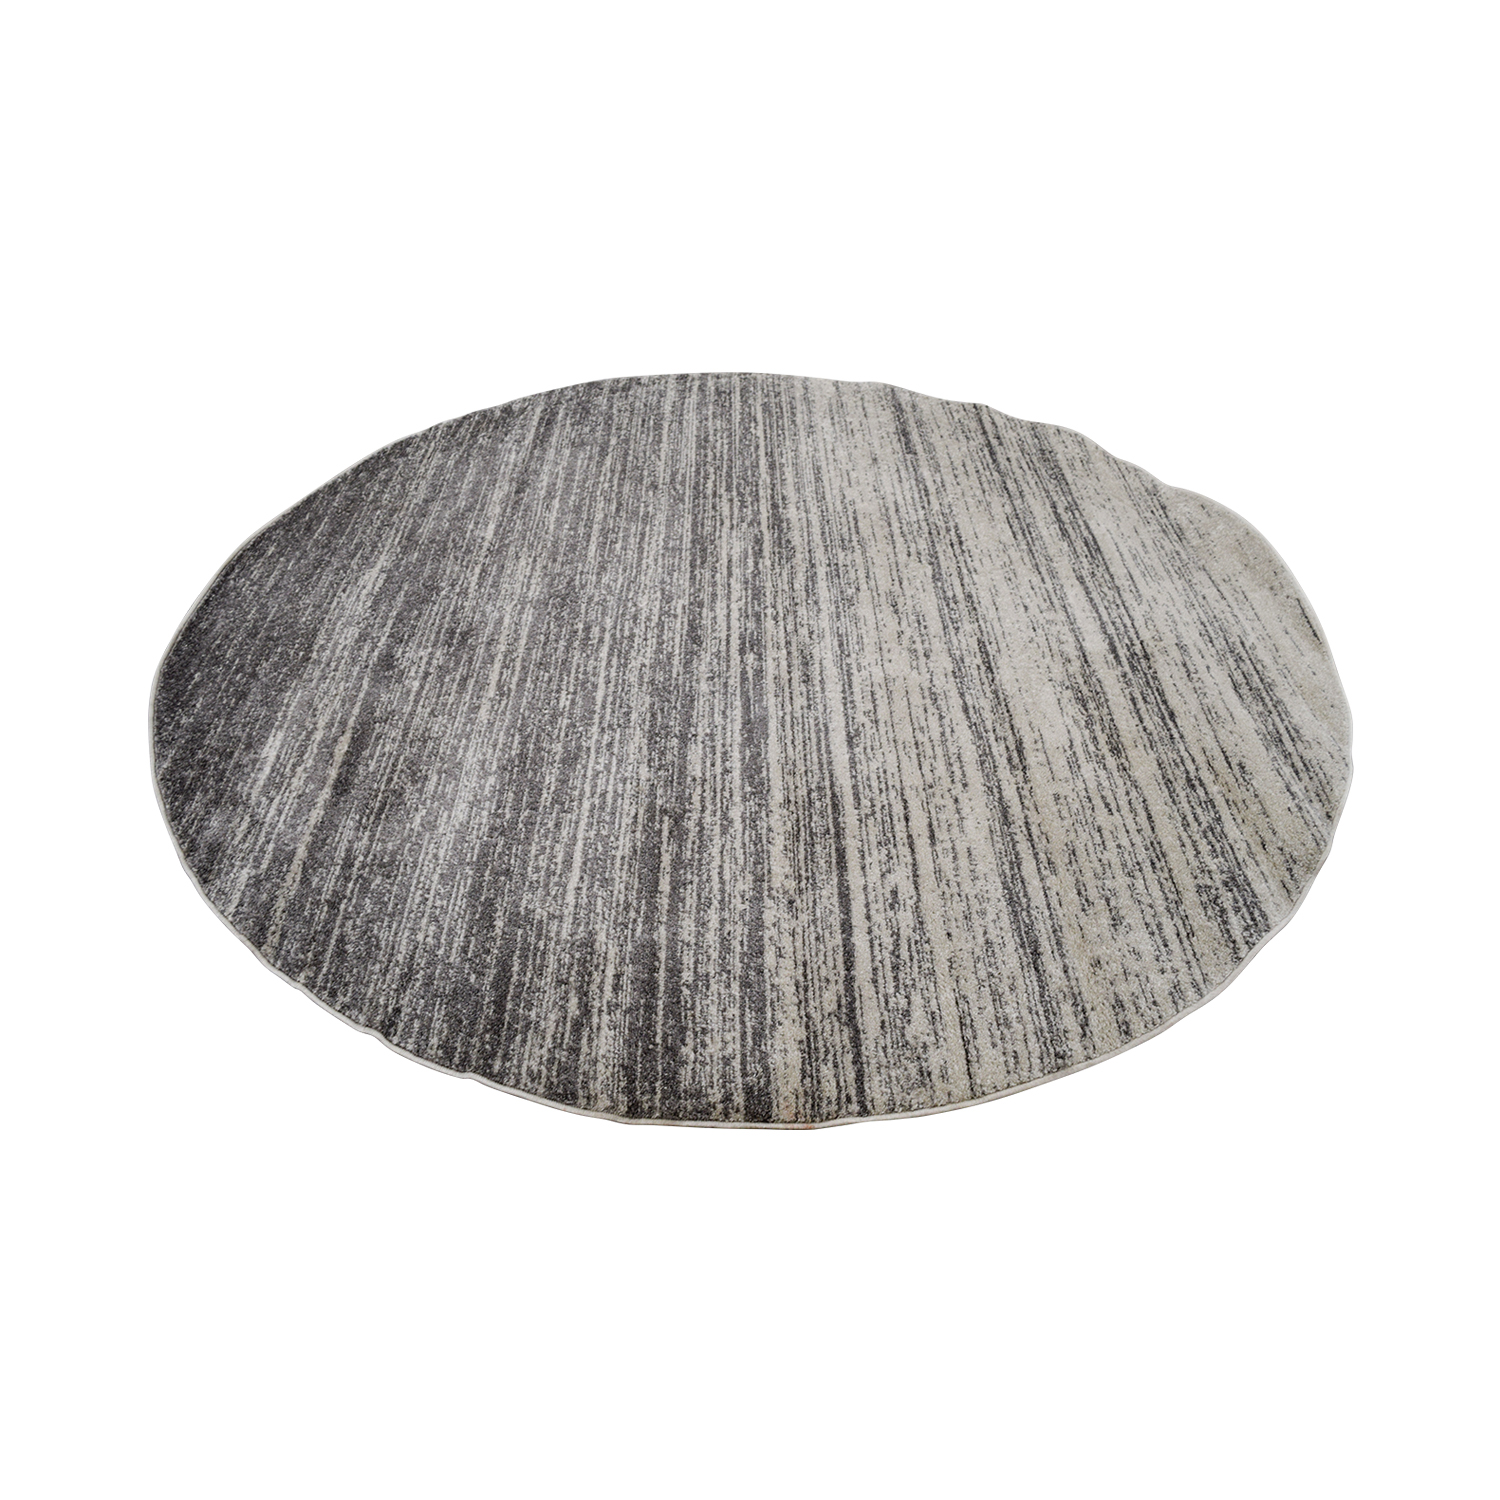 buy Safavieh Grey Round Rug Safavieh Rugs